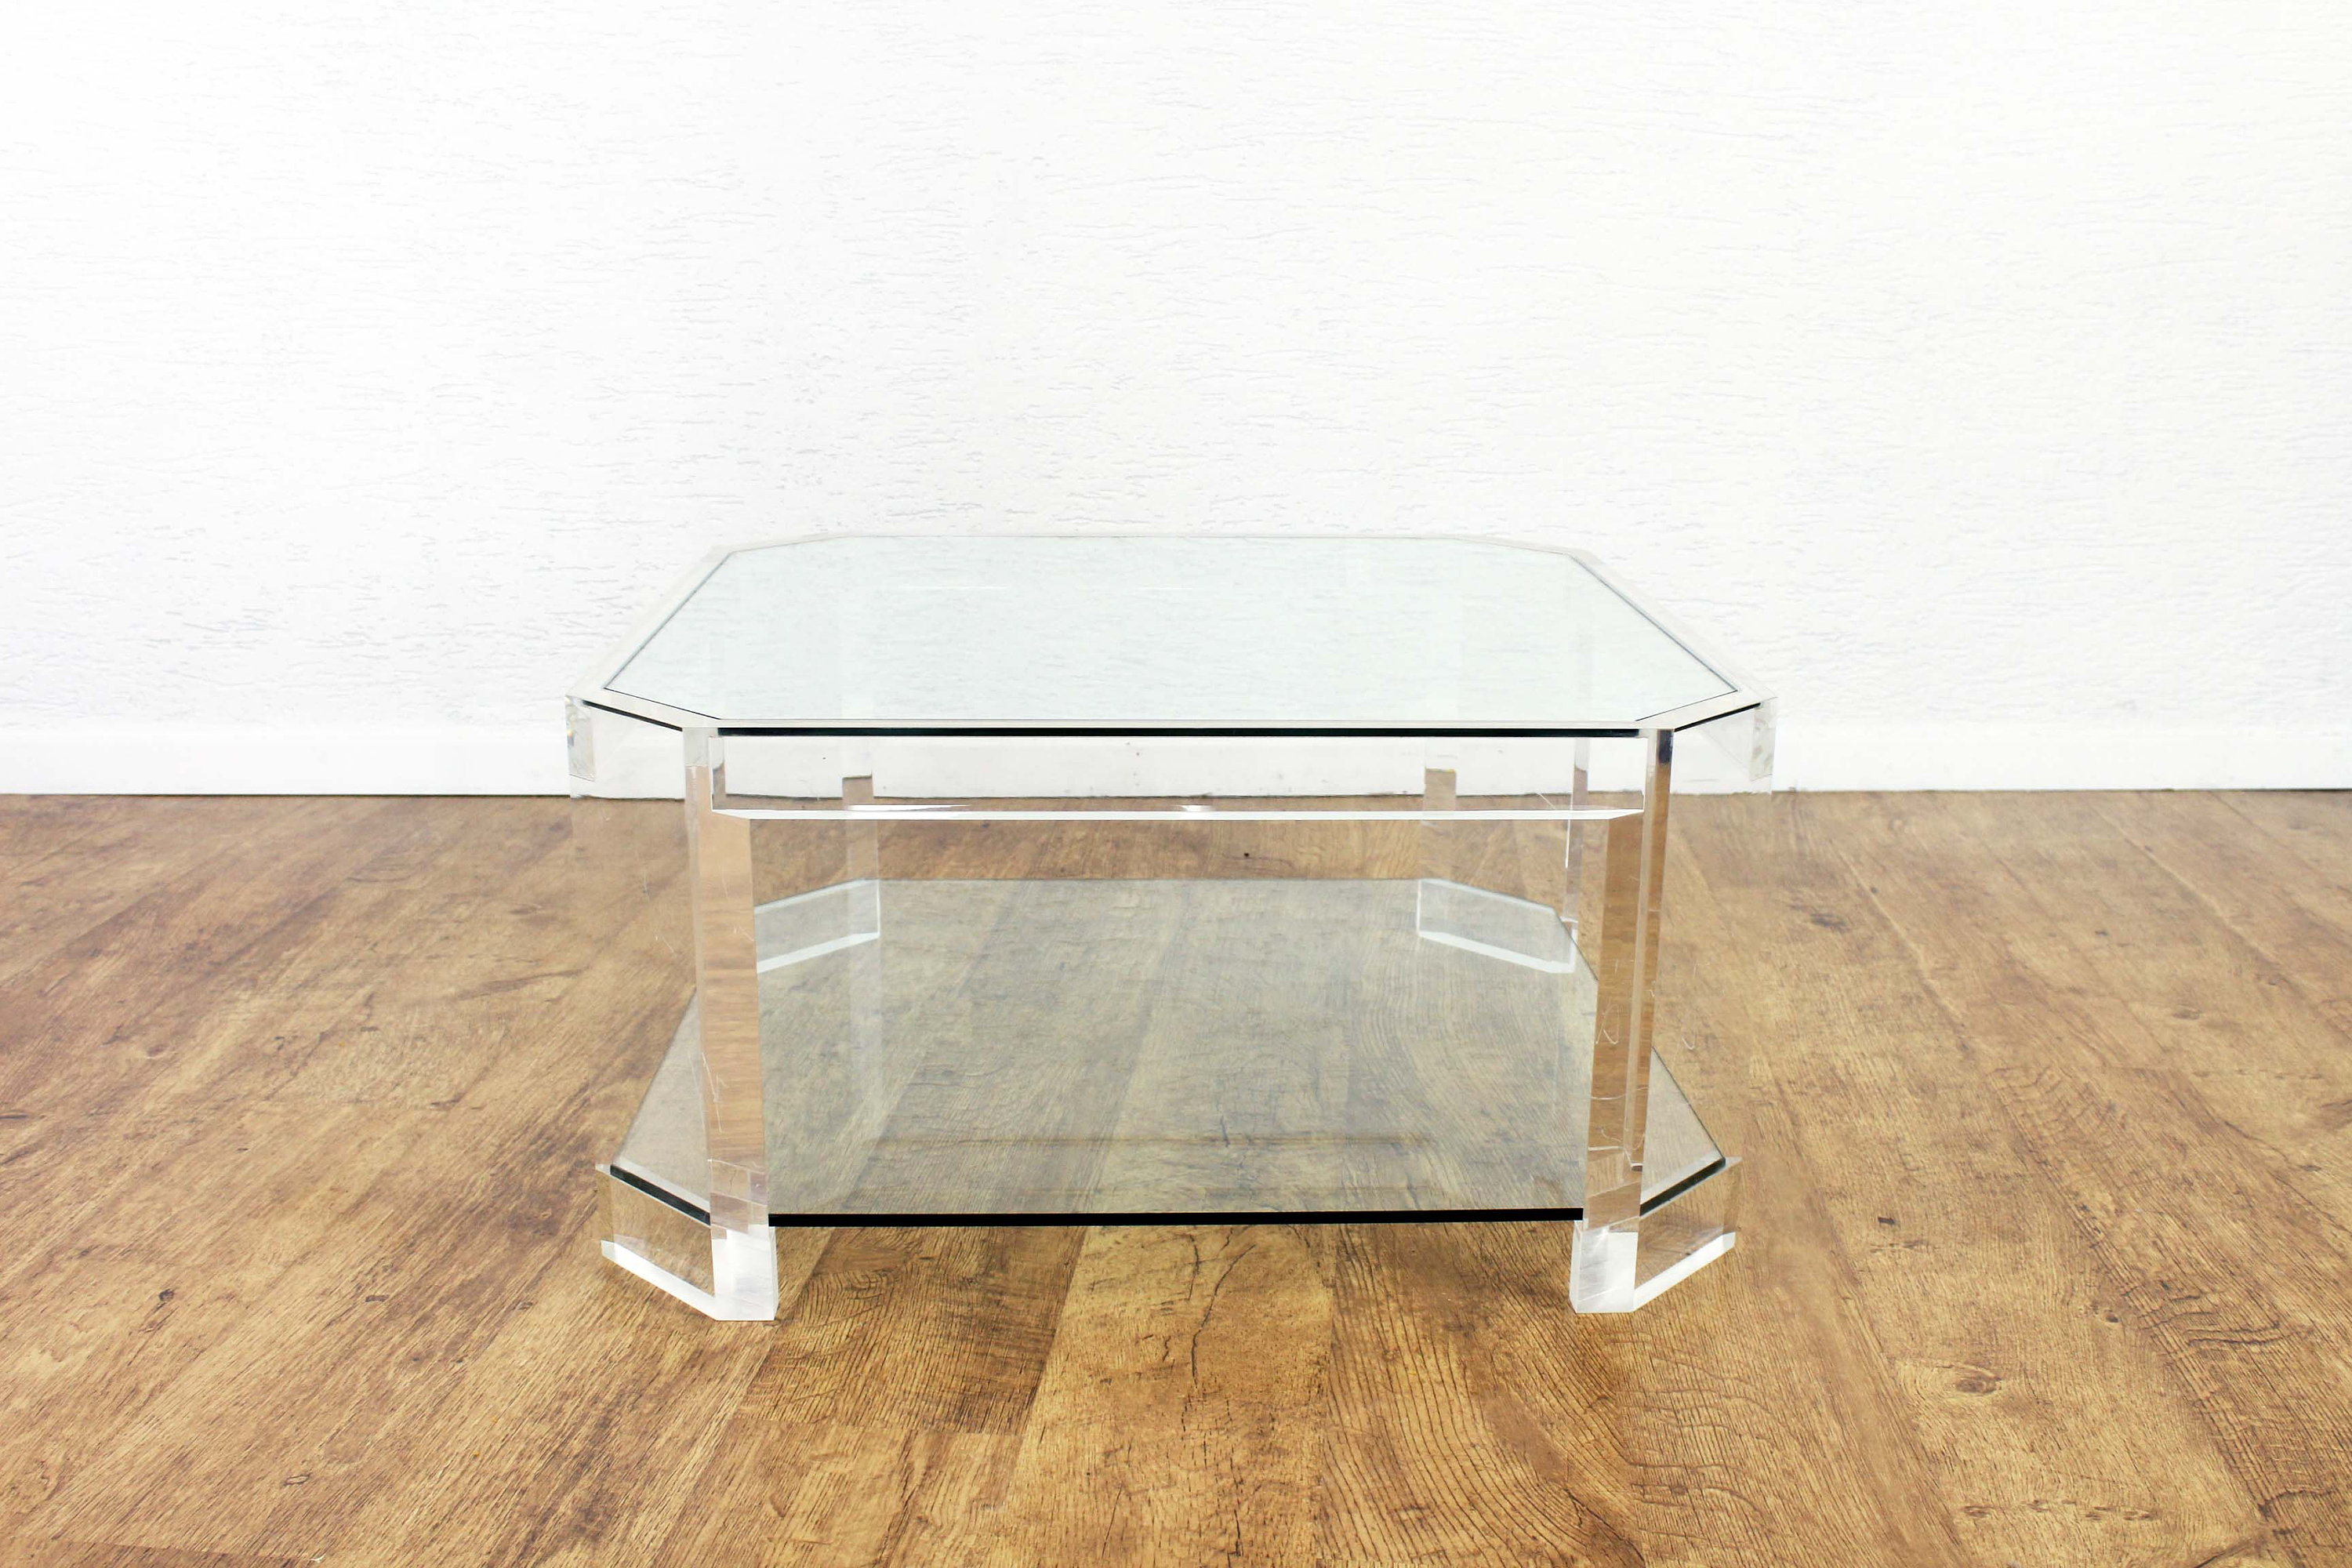 Table basse en plexiglas et verre par David Lange